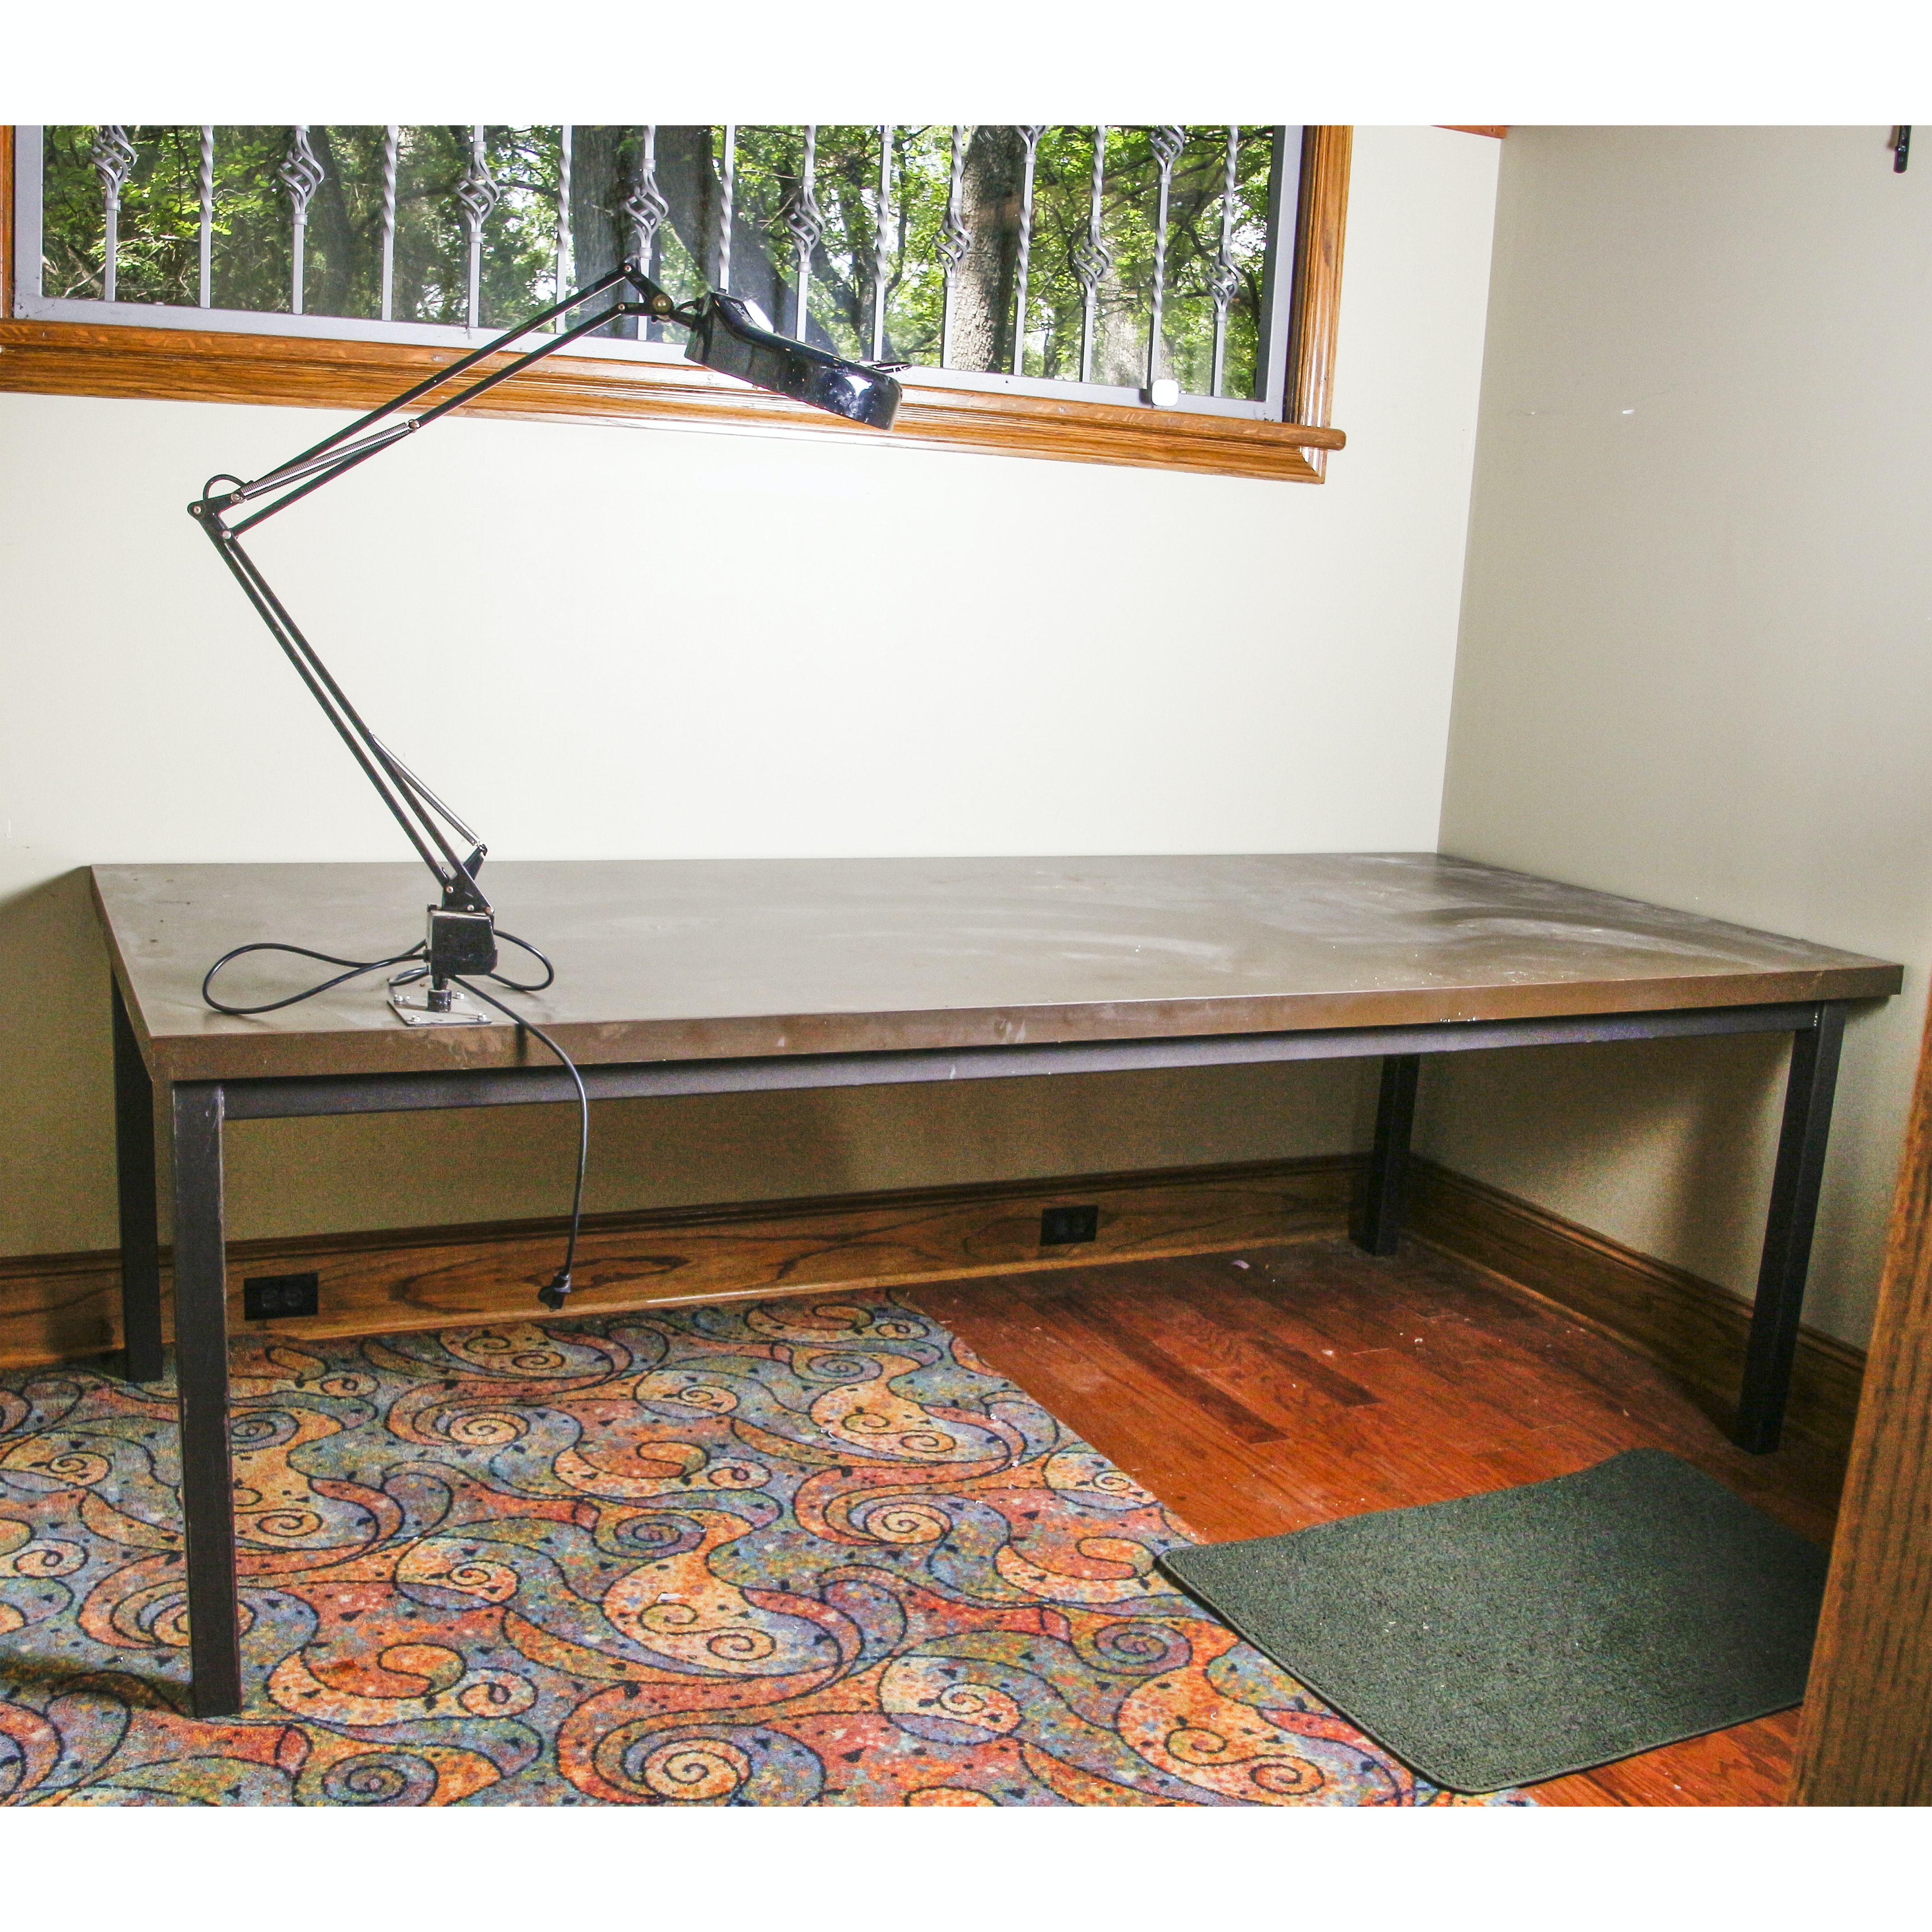 Contemporary Work Table with Magnifying Lamp